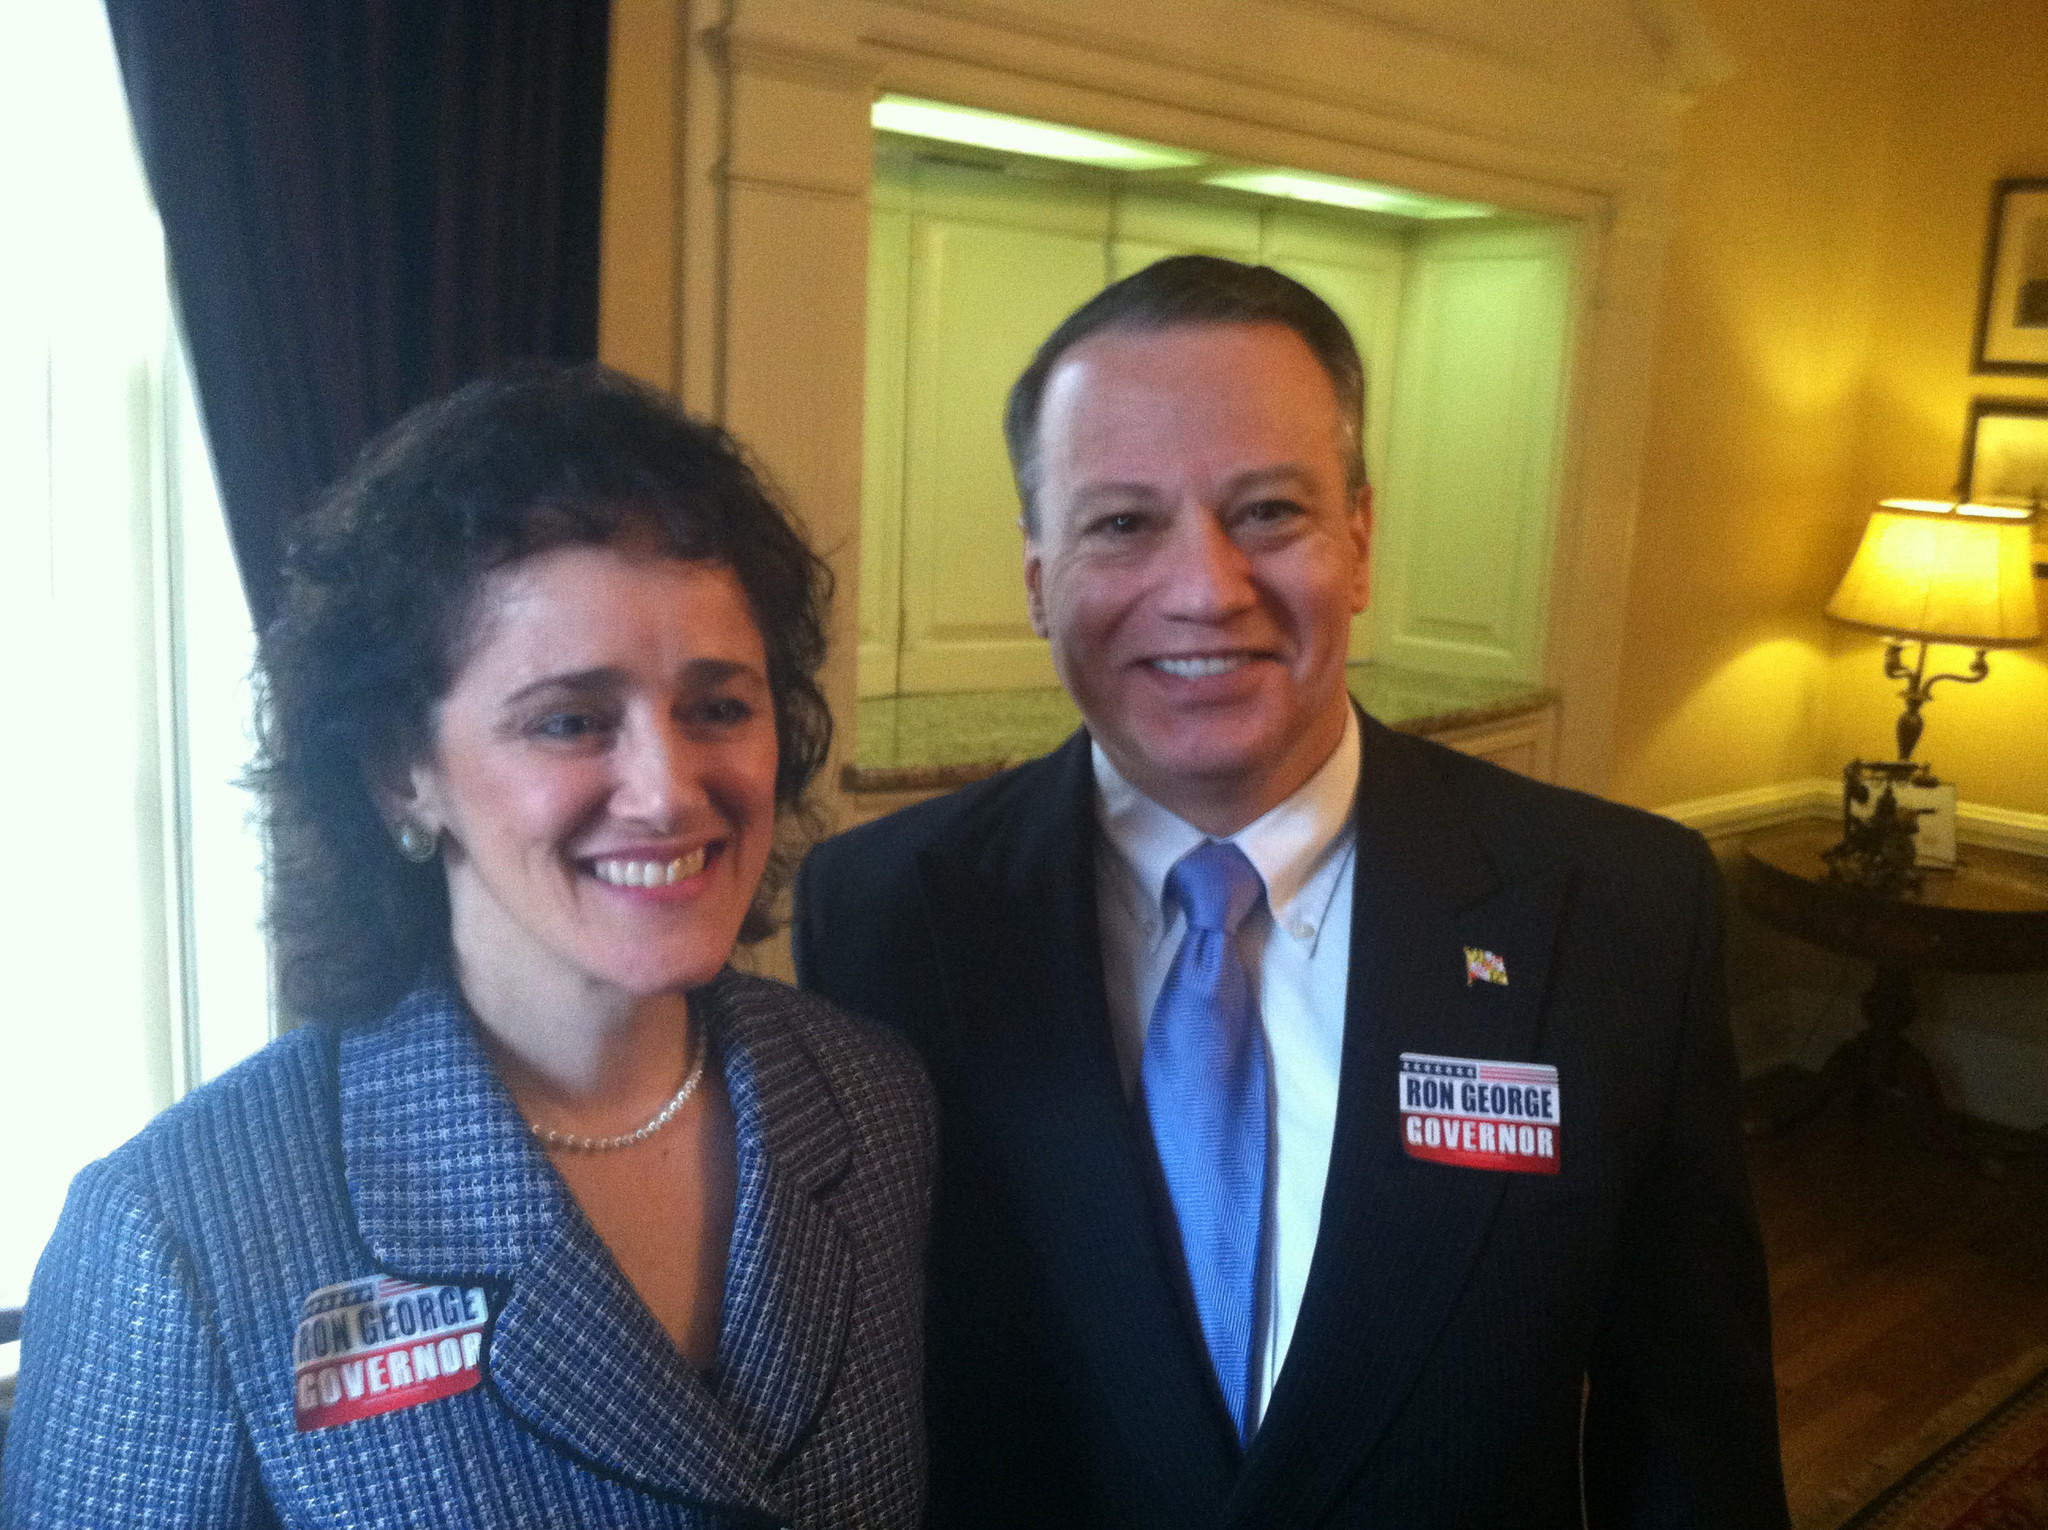 Former Frederick Alderwoman Shelley Aloi joins Del. Ron George as his running mate in his run for the Republican nomination for governor.